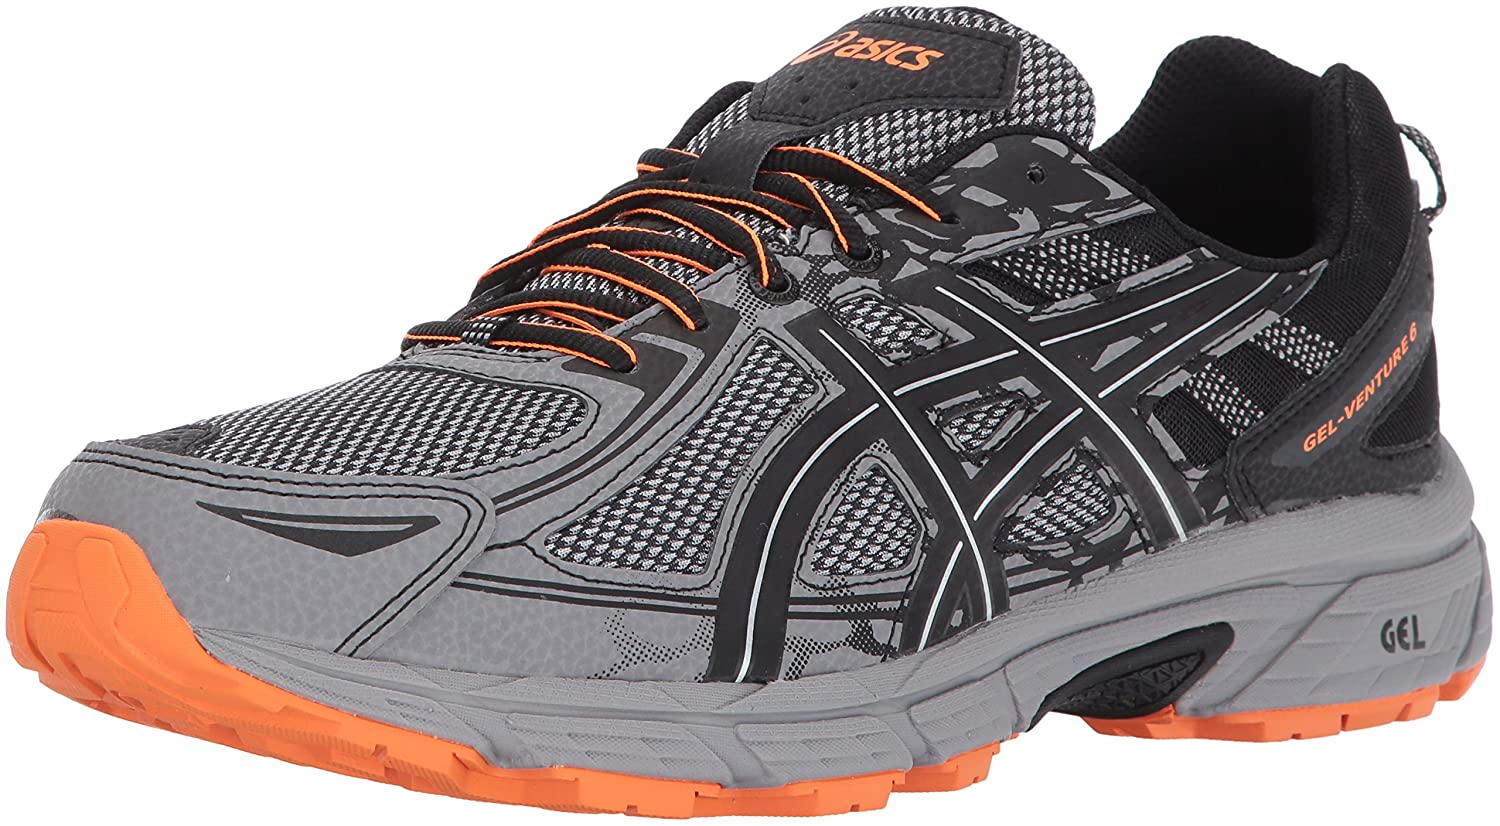 ASICS Men's Gel-Venture 6 Running Shoe B01MYZ7XWO 10 4E US|Frost Grey/Phantom/Black